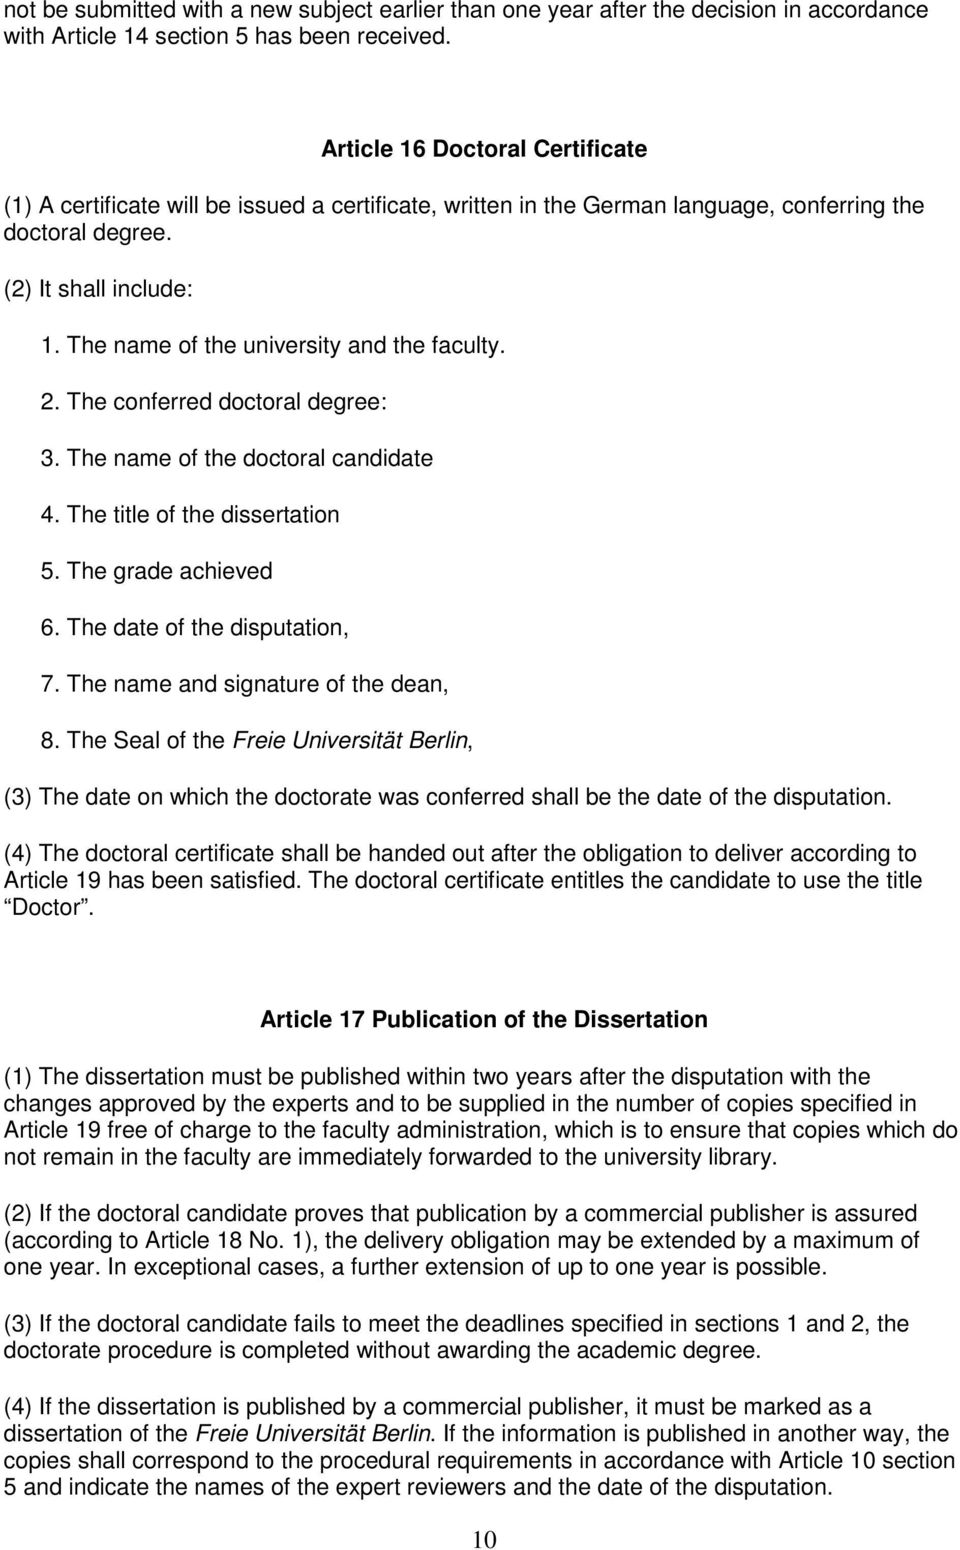 The name of the university and the faculty. 2. The conferred doctoral degree: 3. The name of the doctoral candidate 4. The title of the dissertation 5. The grade achieved 6.